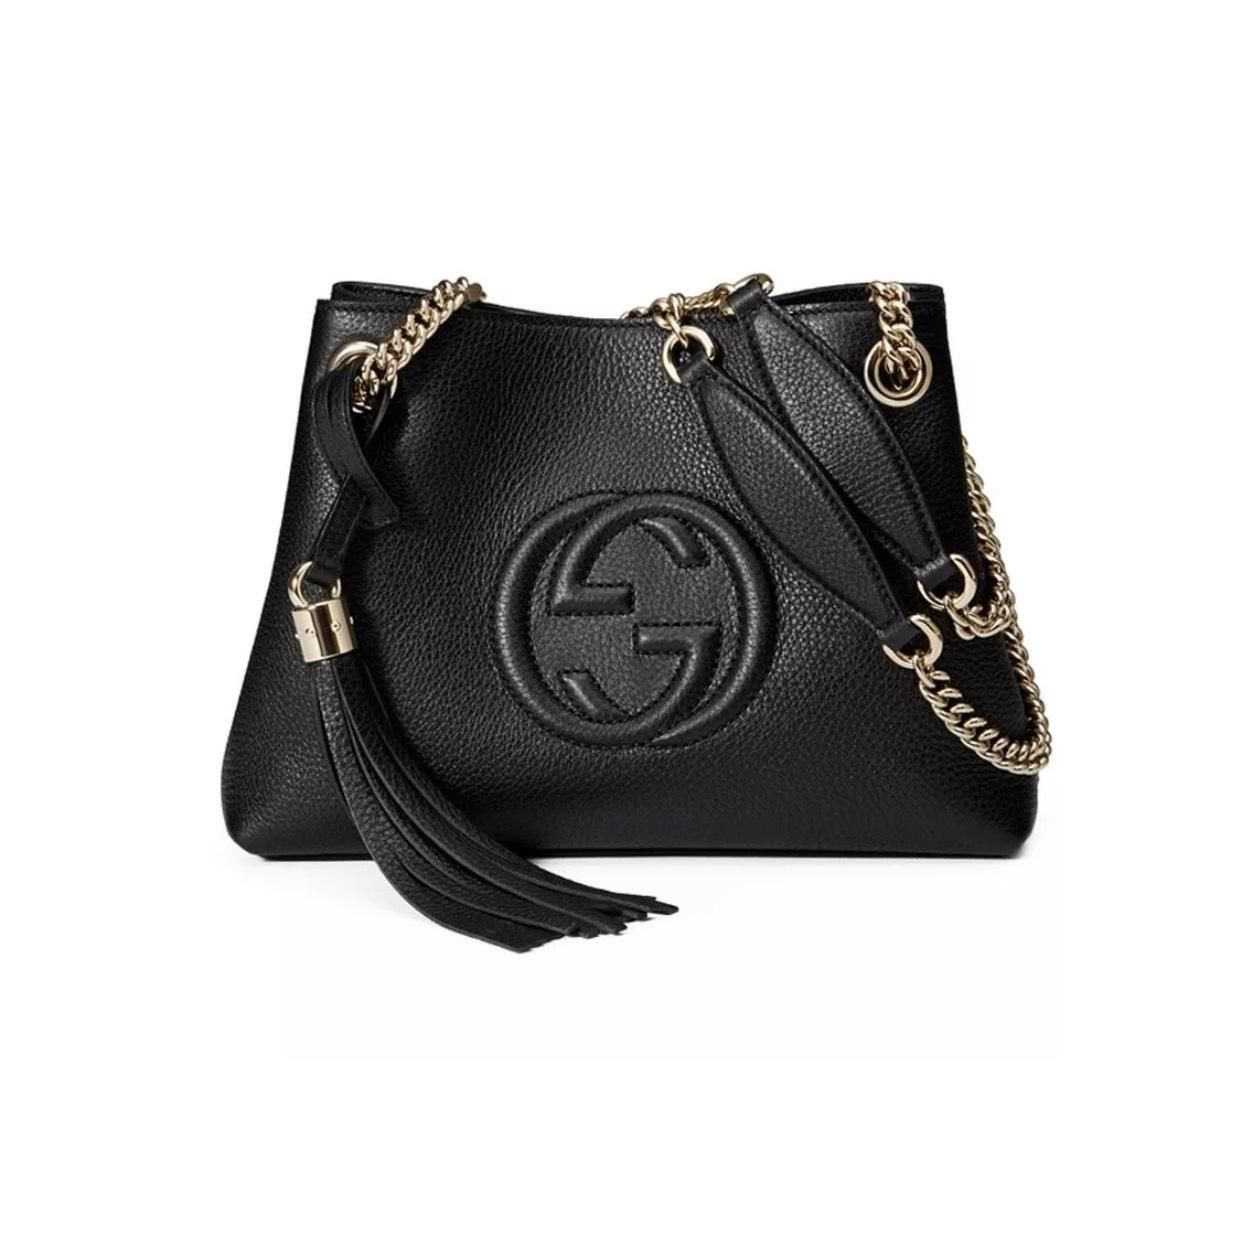 7b645266bda Get one of the hottest styles of the season! The Gucci Soho Leather Small  Chain Black Tote Bag is a top 10 member favorite on Tradesy.